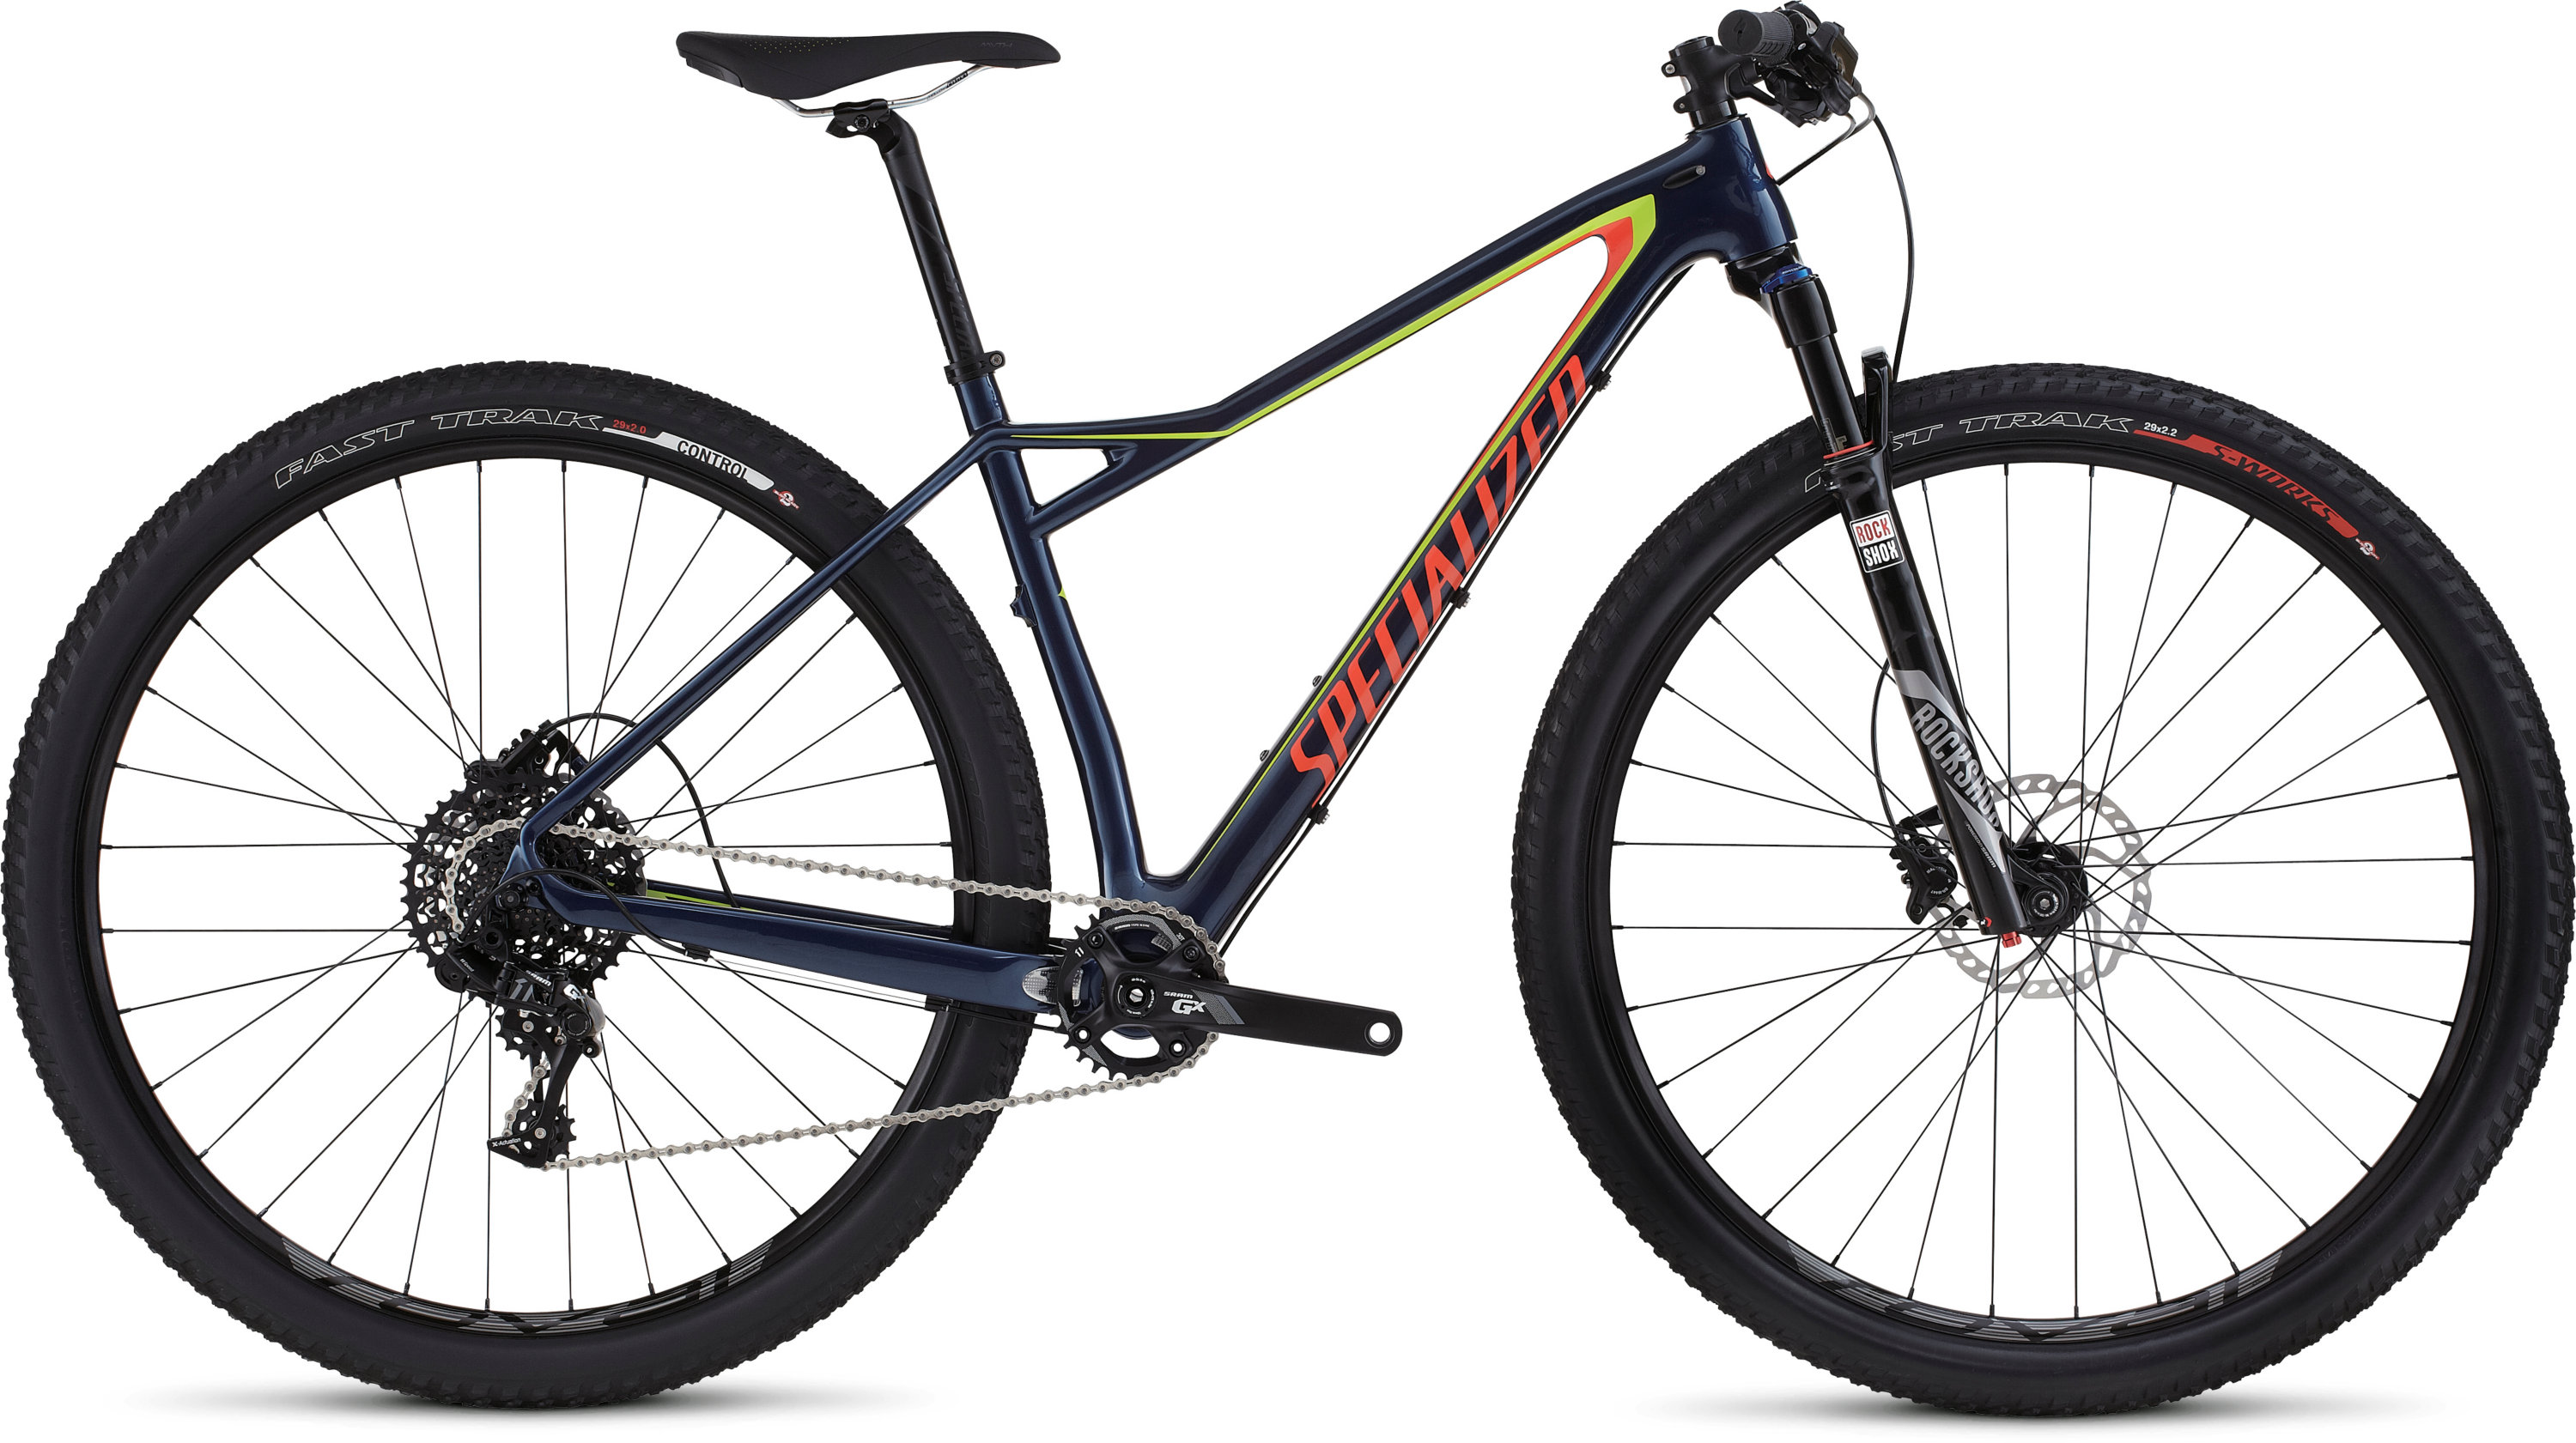 SPECIALIZED FATE COMP CARBON 29 NVY/PRLCRL/HYP S - Bikedreams & Dustbikes